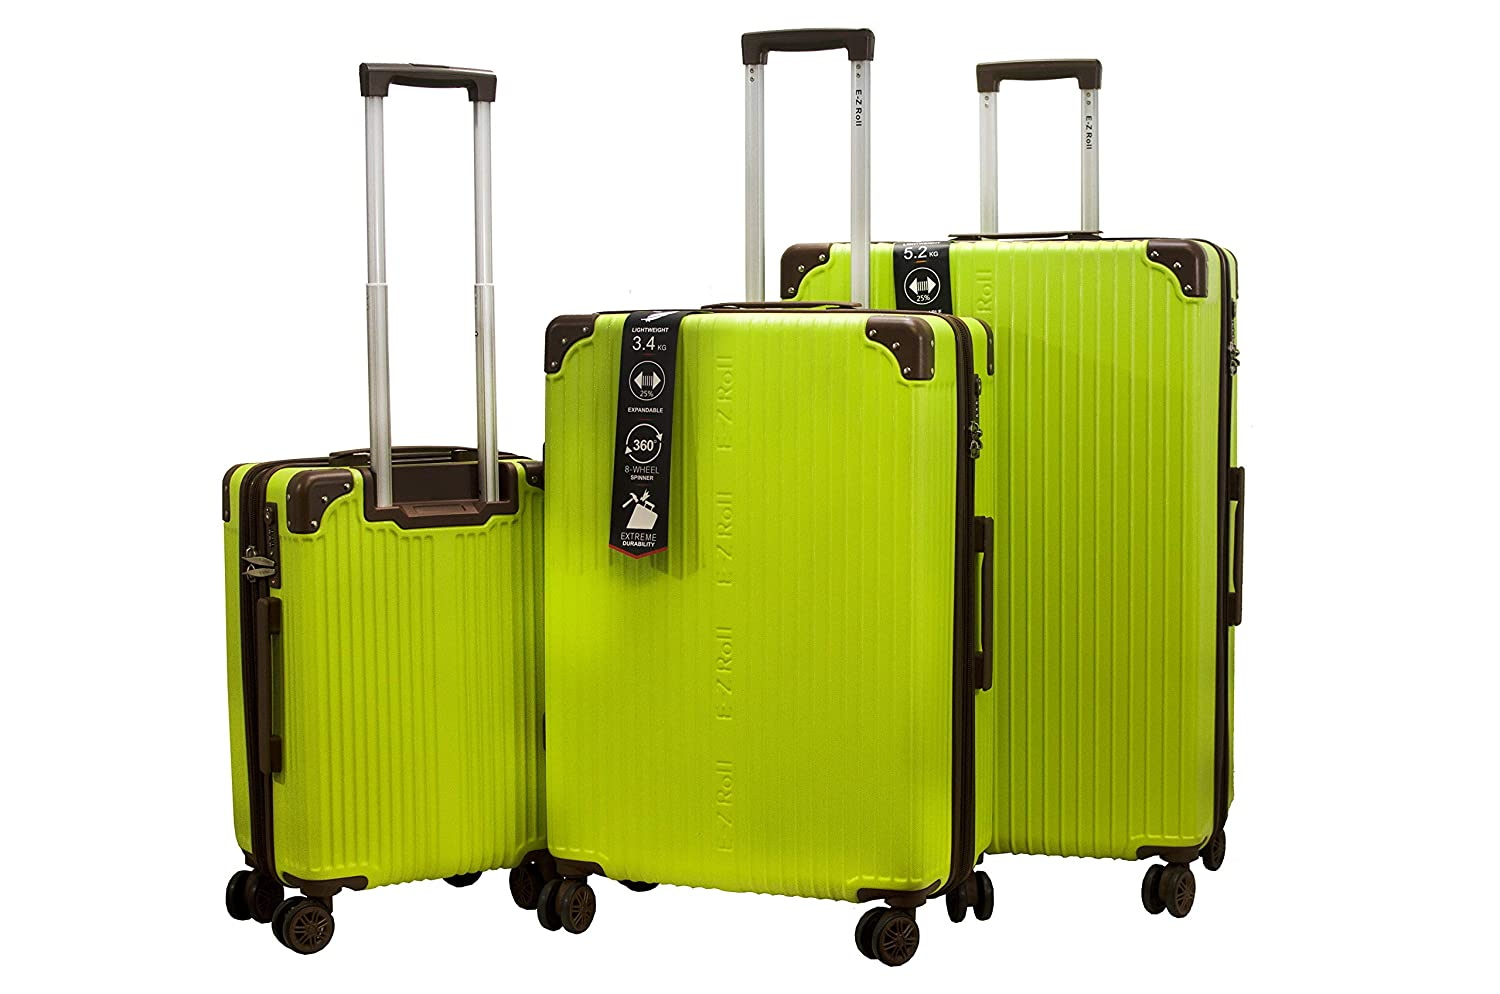 Pink E-Z ROLL Brand Classic 3 piece Hardside Spinner Luggage Set-10 years Warranty